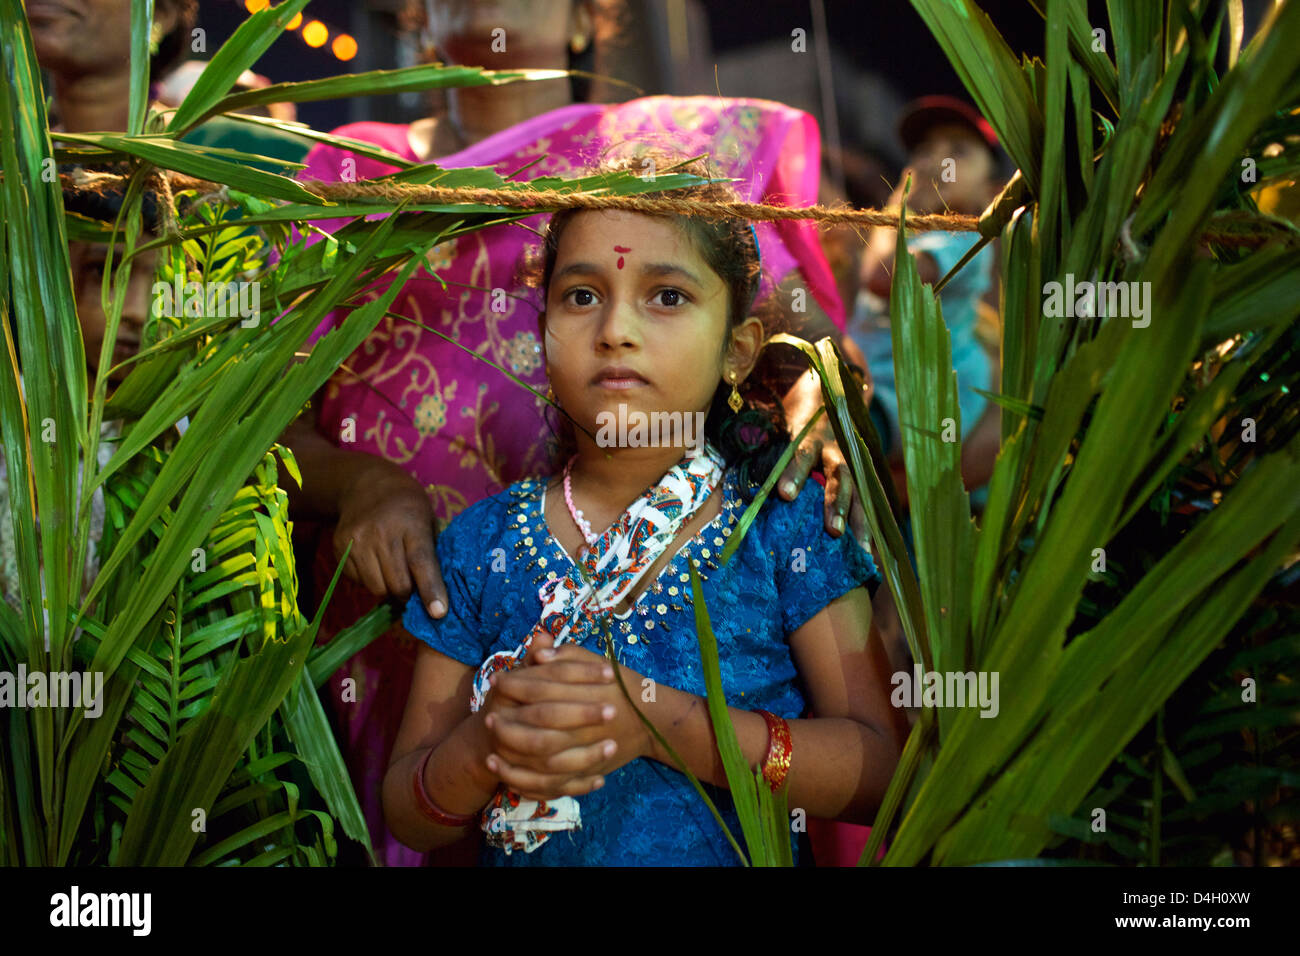 Christian celebration for St. Sebastian birthday in the village of Poovar on the south coast of Kerala, India - Stock Image